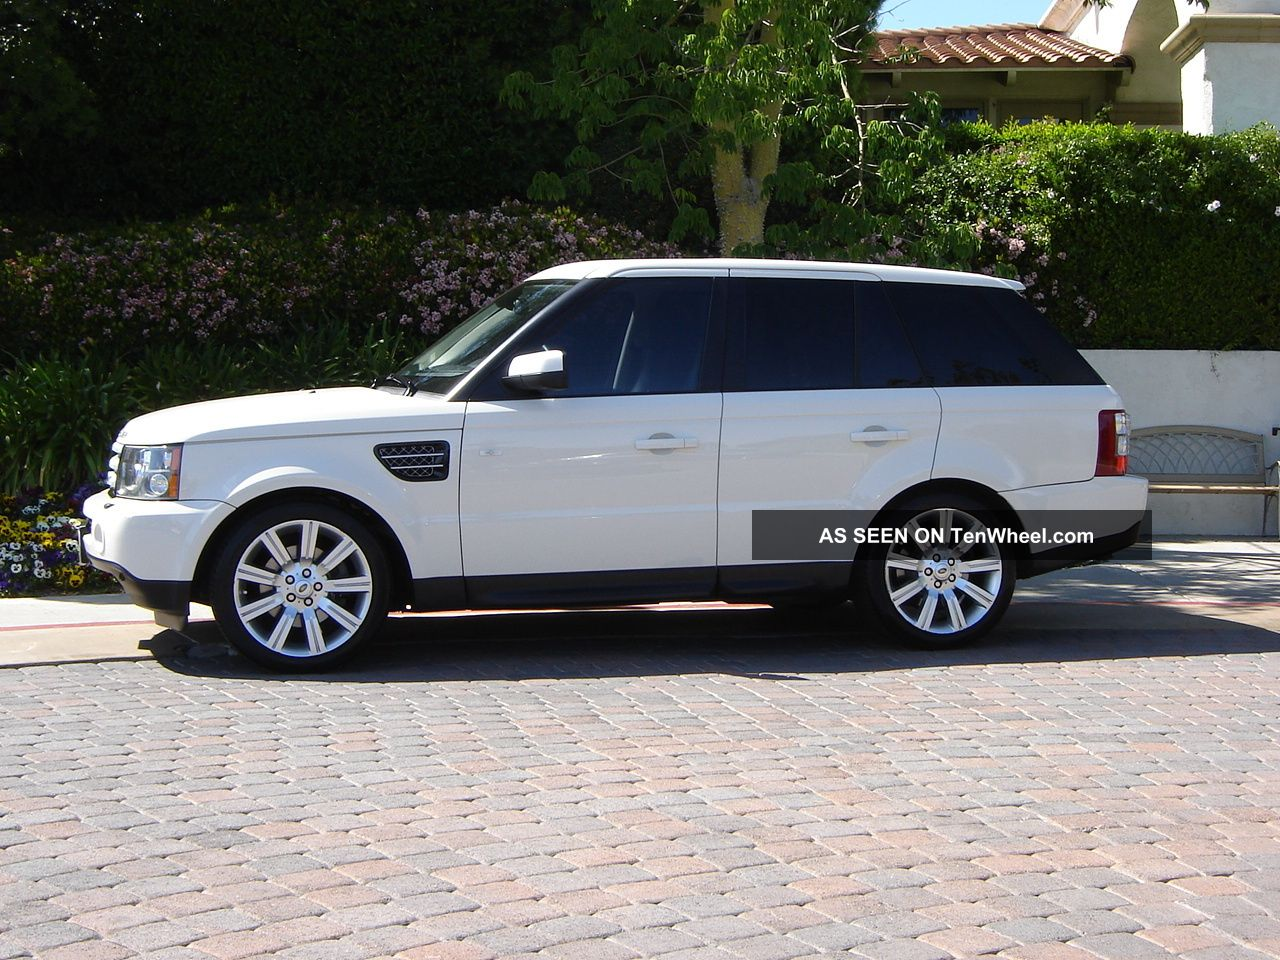 Buy Here Pay Here Dallas >> 2009 Land Rover Range Rover Sport Hse Dallas Texas Land | Autos Post